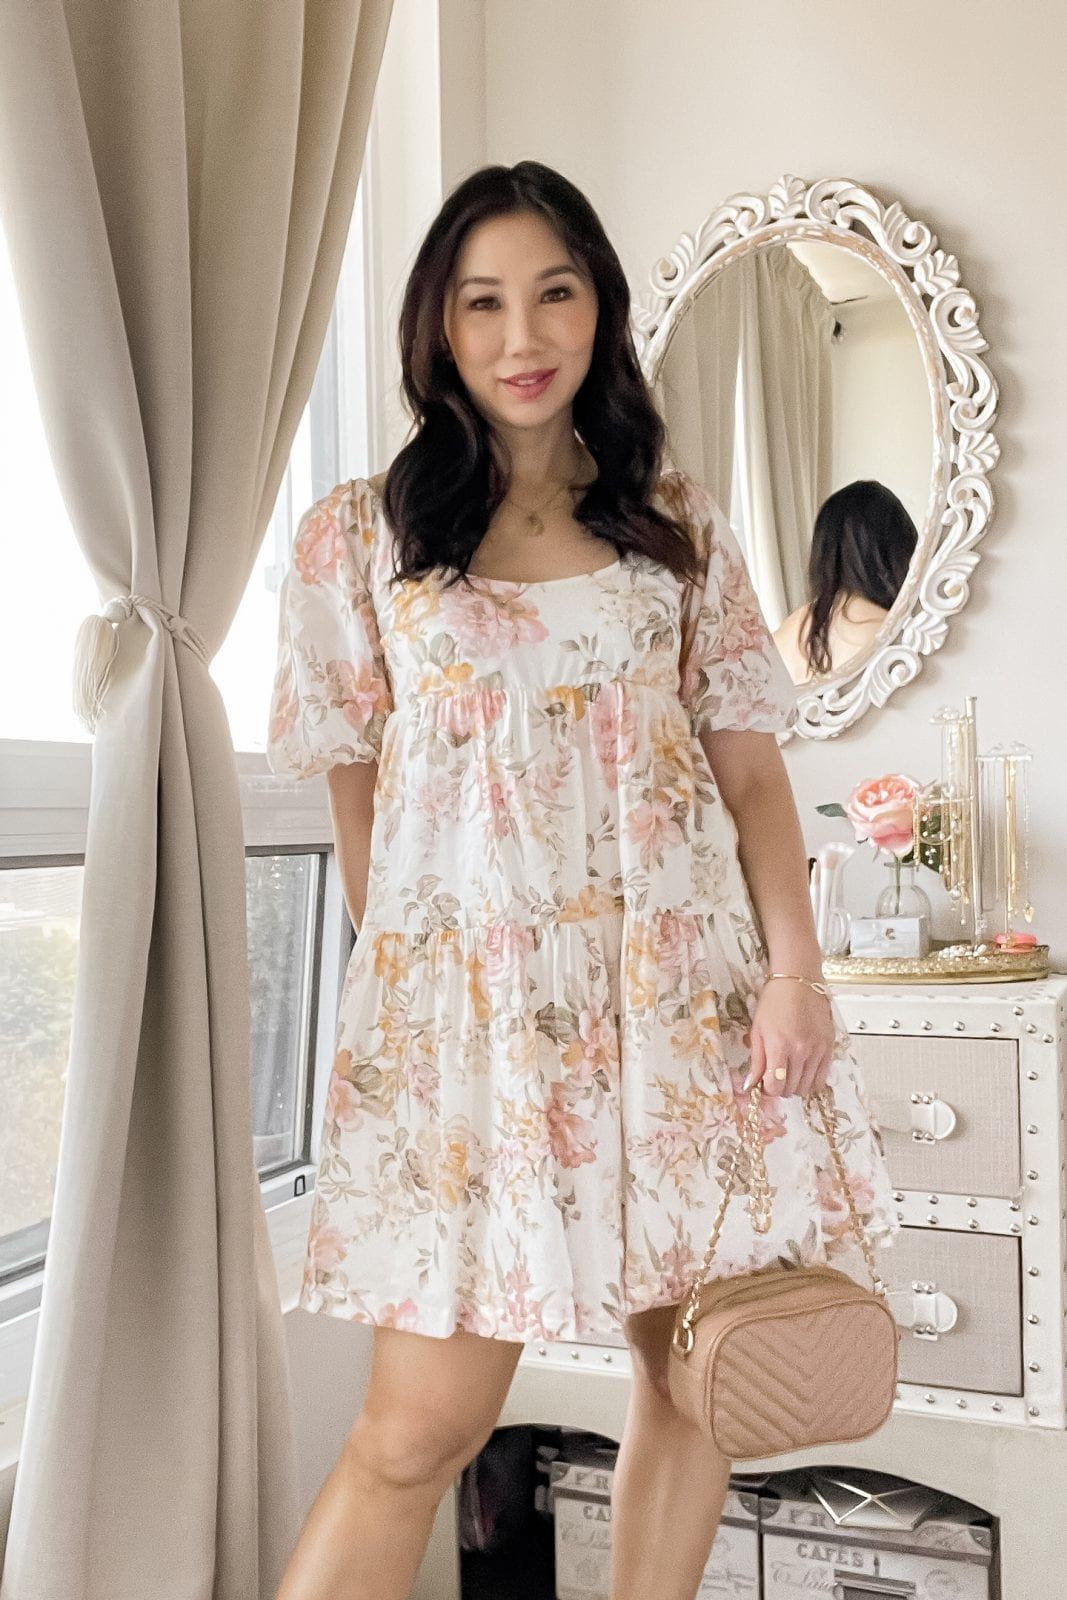 3 must-have summer dresses from Ever New - This babydoll dress is the perfect casual dress for warm weather season with cute puff sleeve and a floral print.